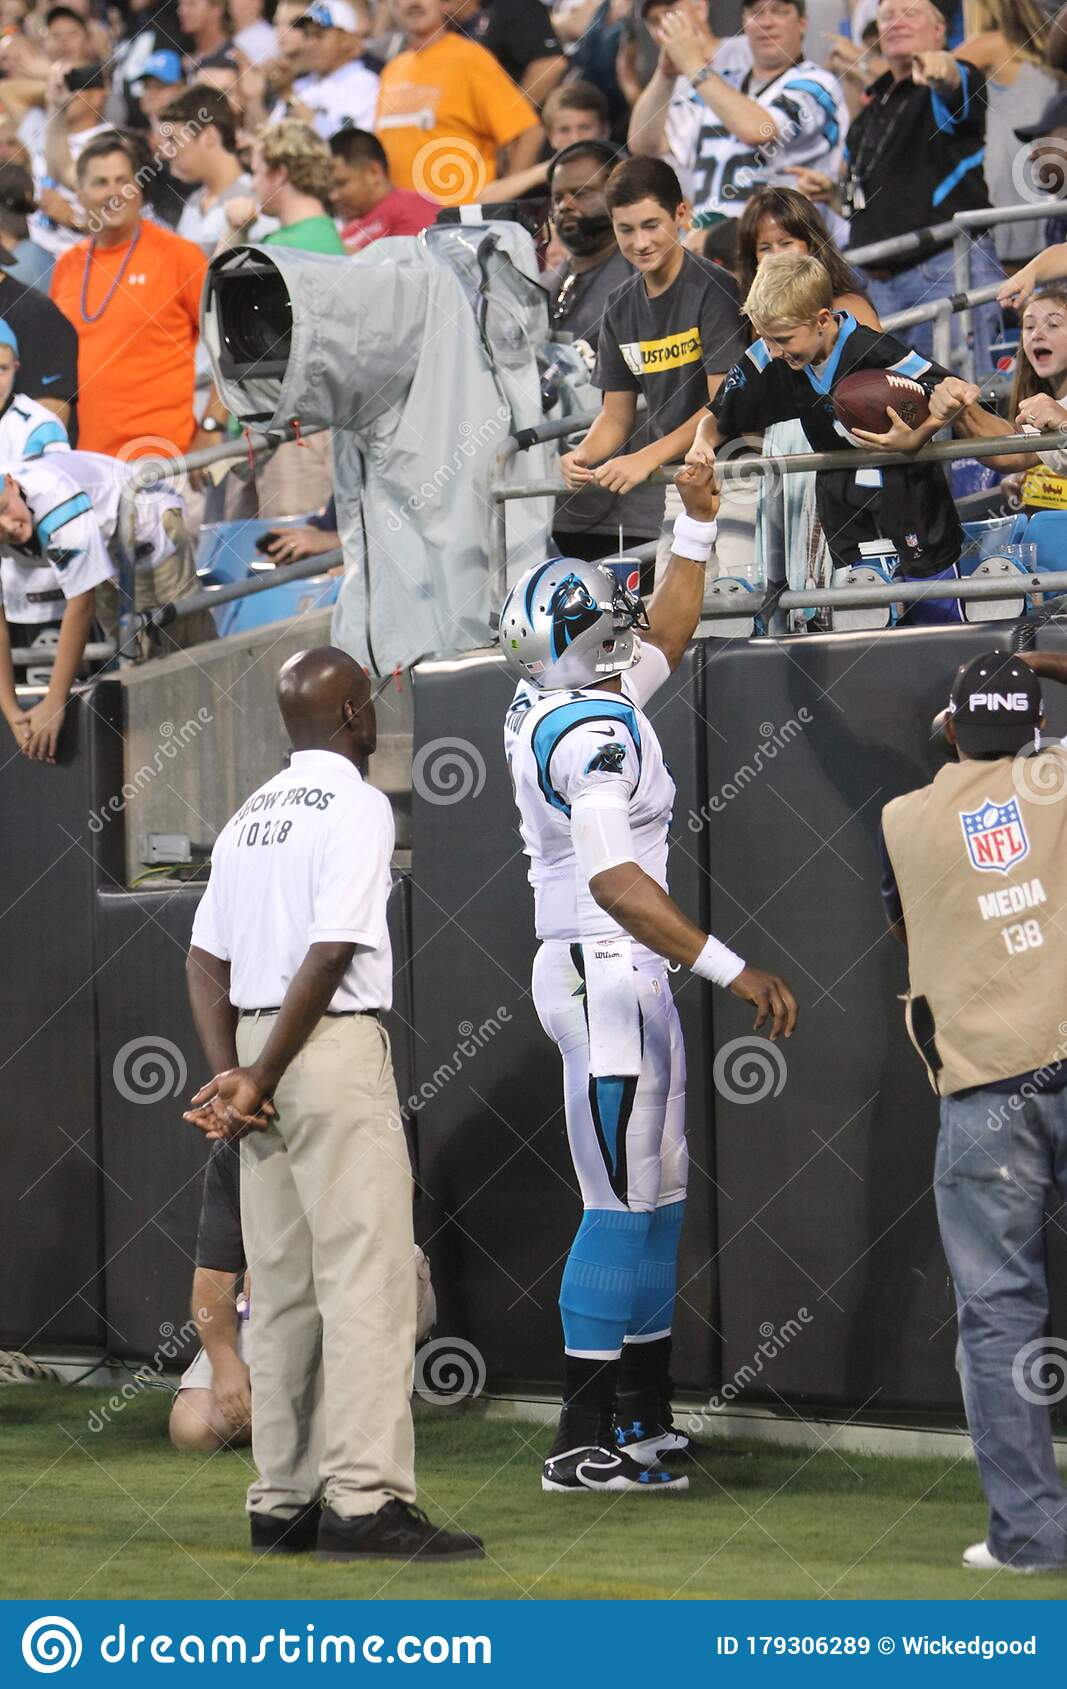 Cam Newton editorial stock photo. Image of national